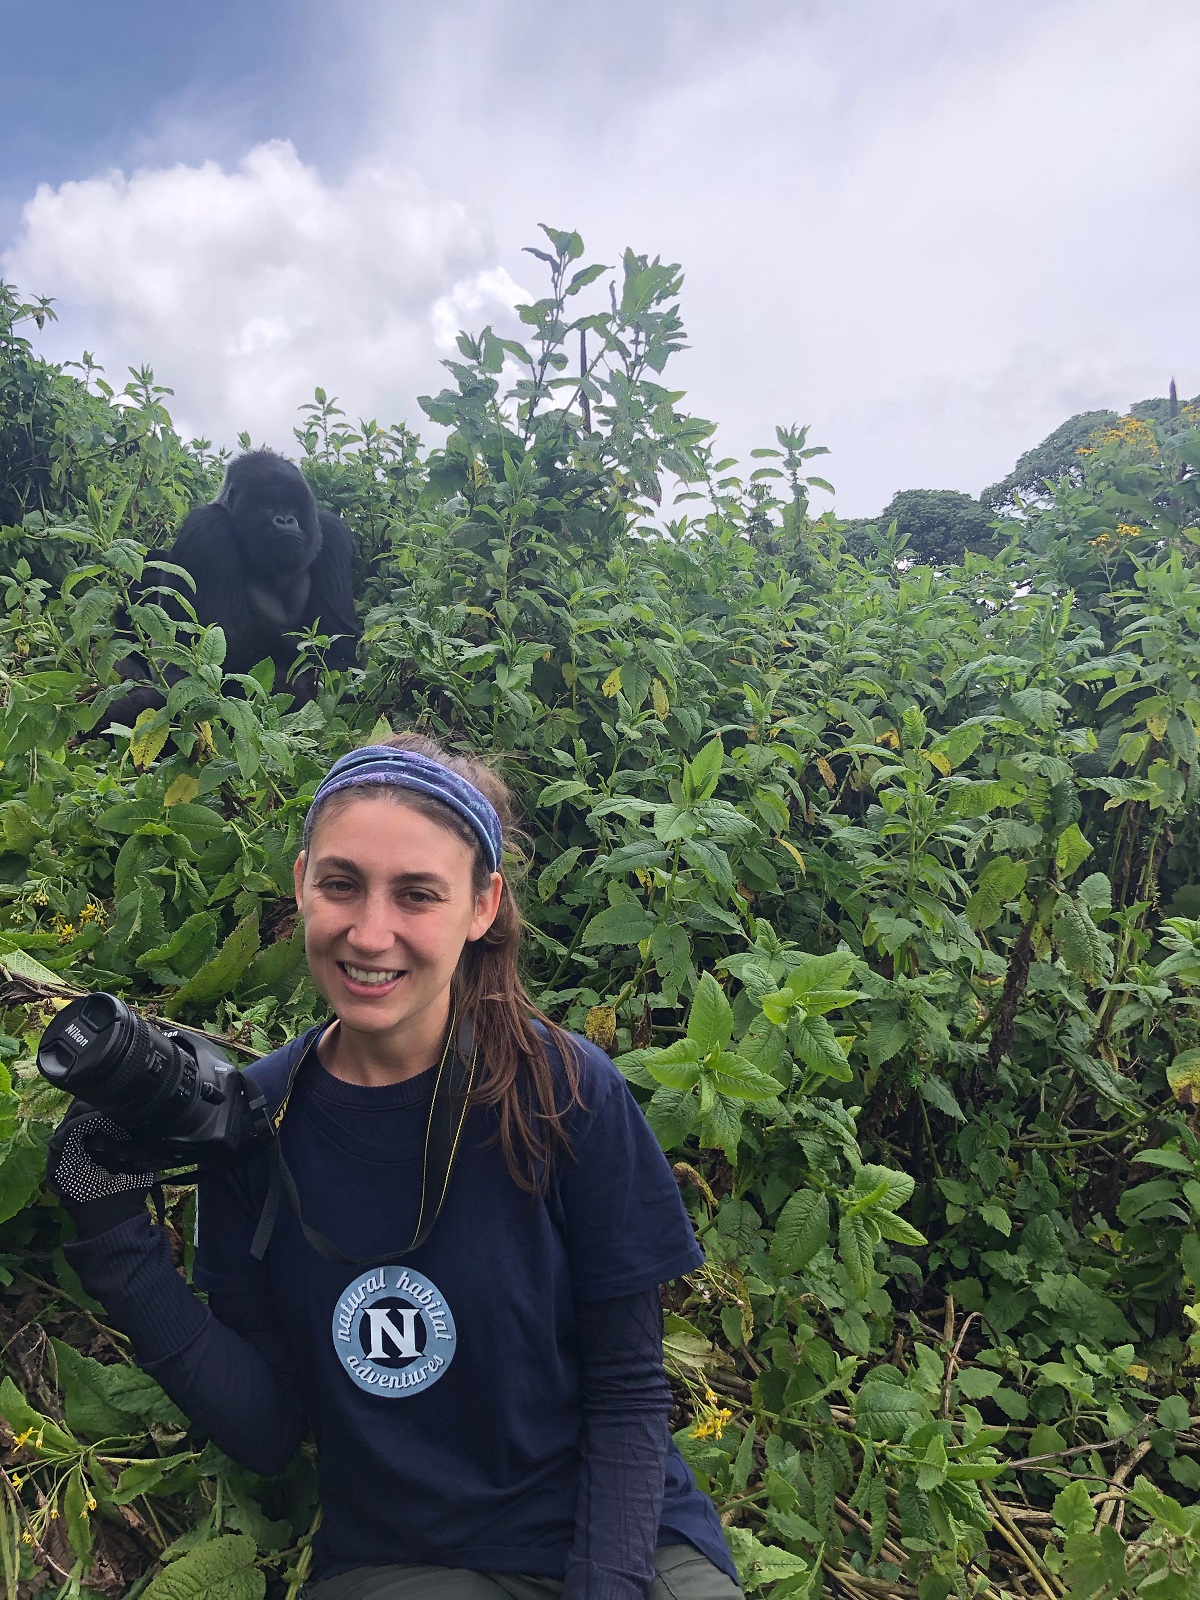 Girl with gorillas in Uganda on a Nat Hab safari.